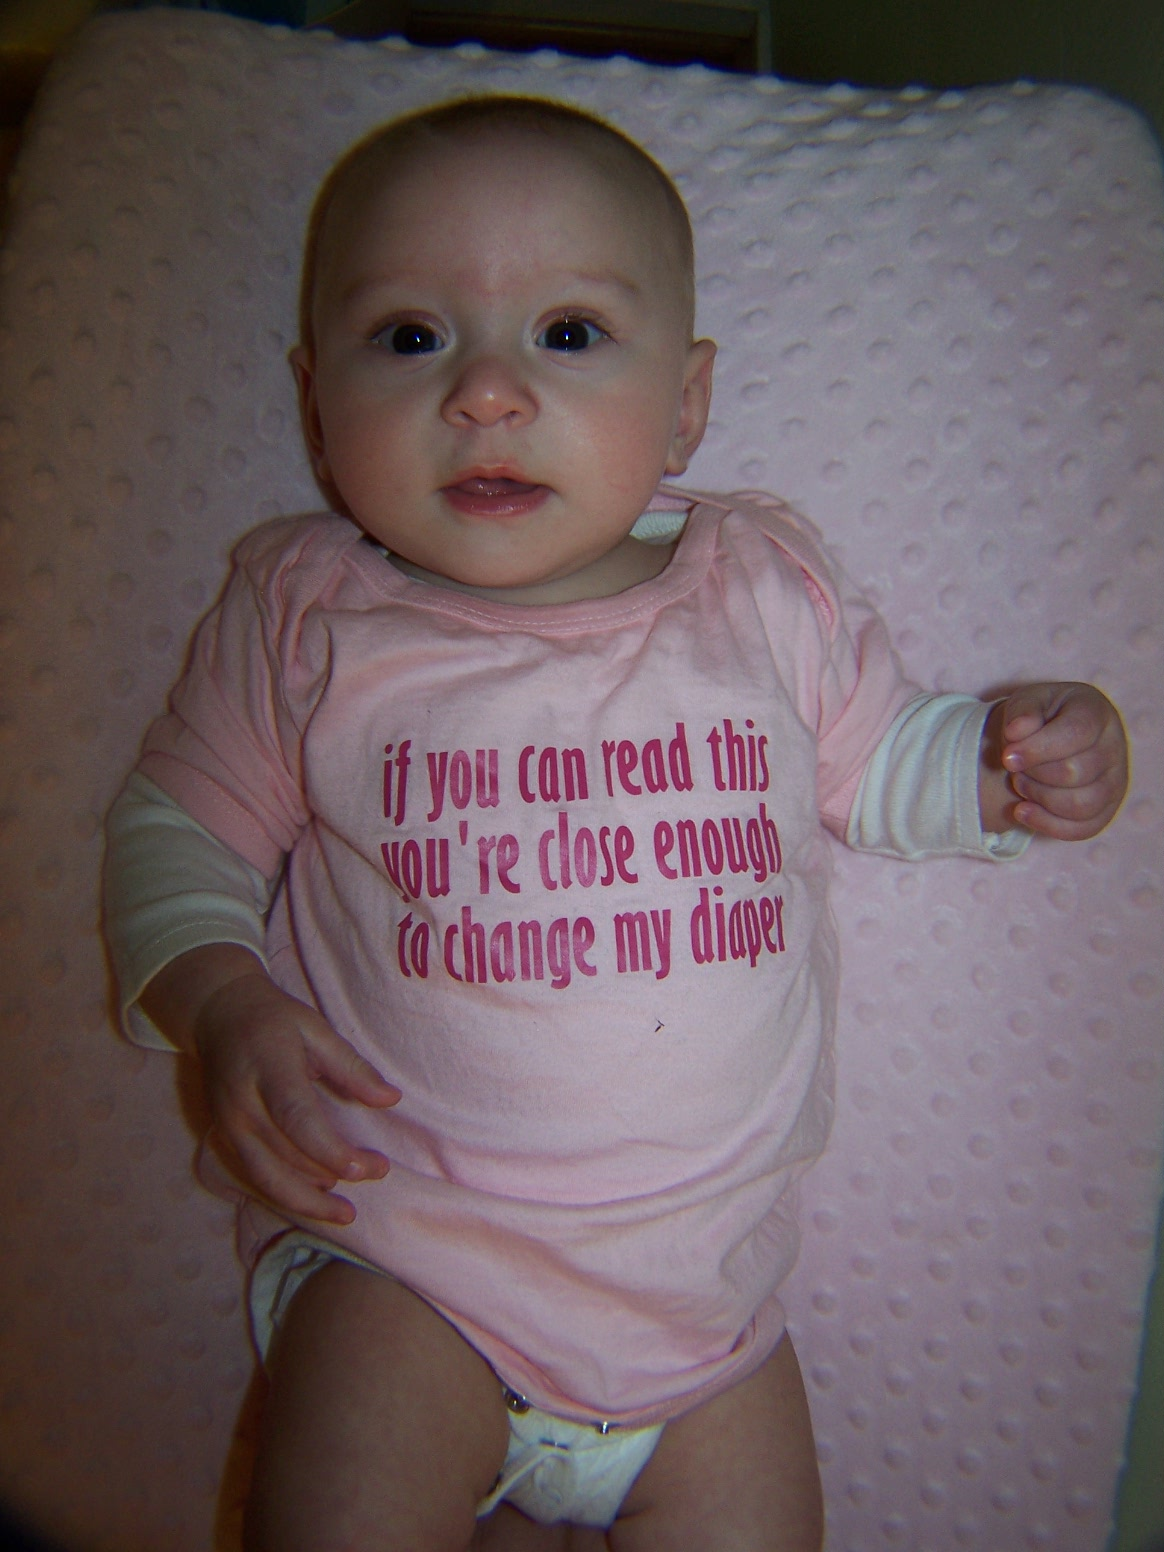 Cute naked baby pictures - Page 2 - BabyCenter